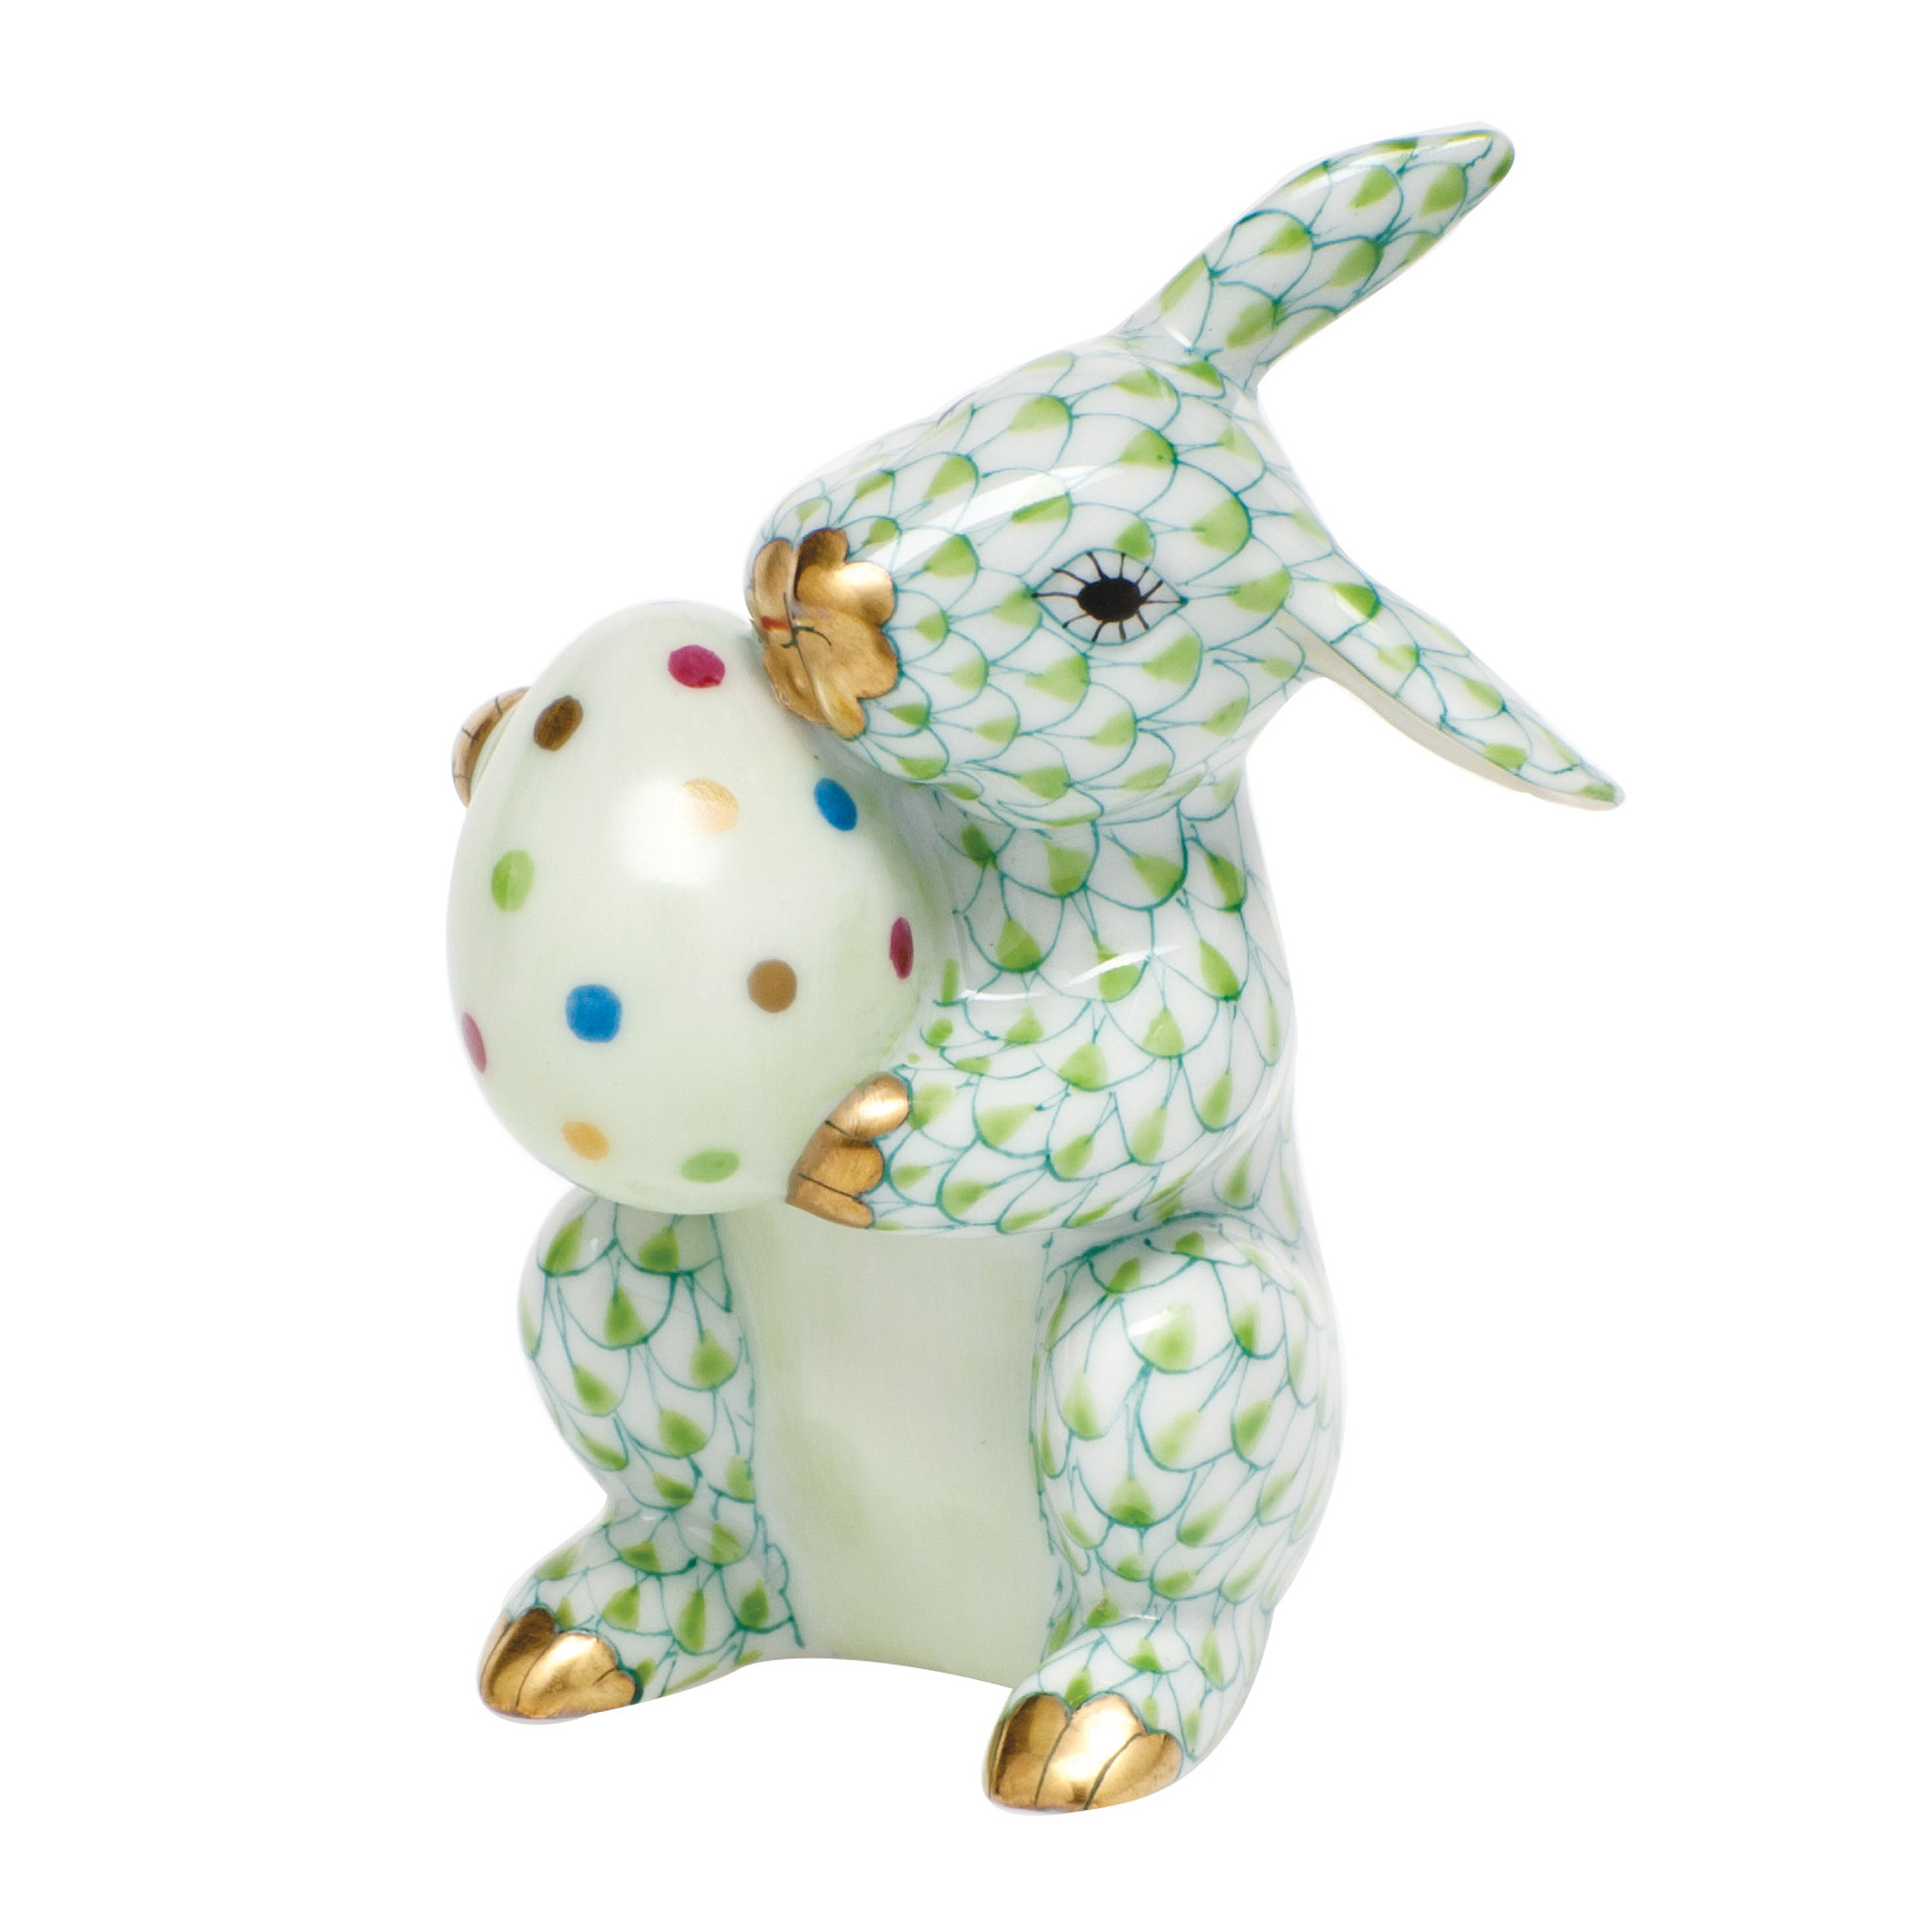 Herend Easter Bunny With Egg, Key Lime